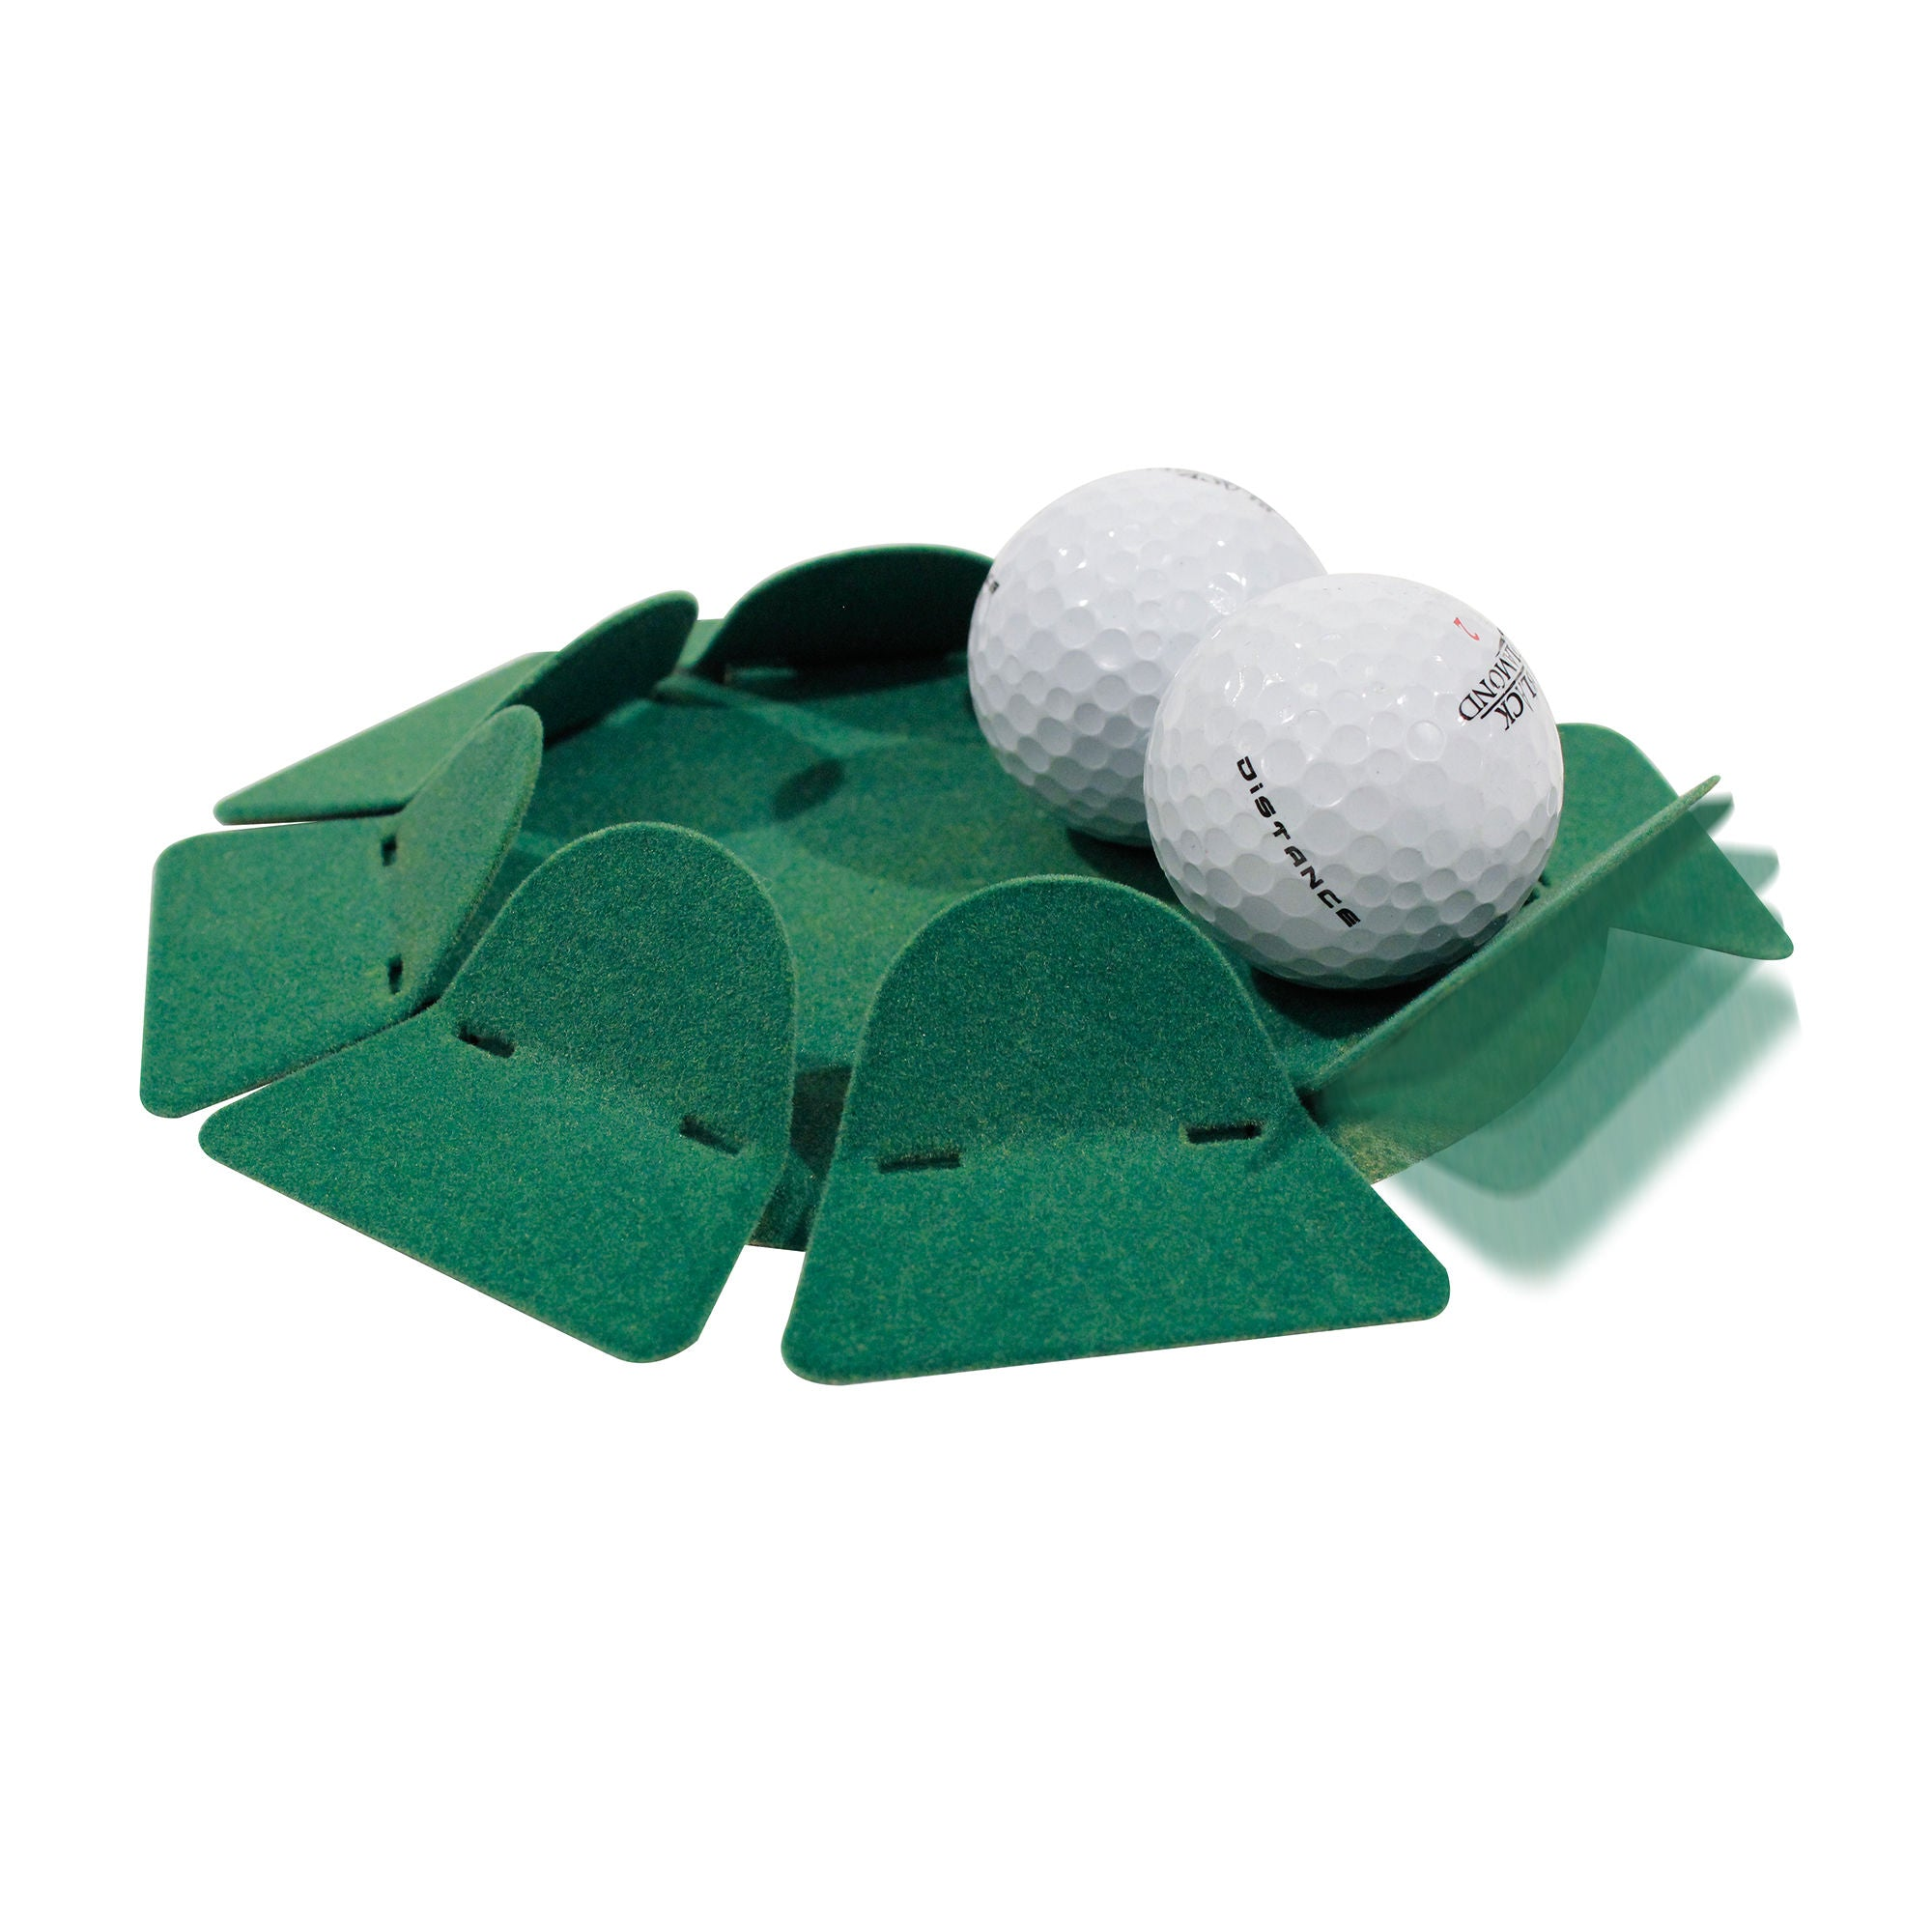 Putting Cup Green Baize - Putterfingers.com